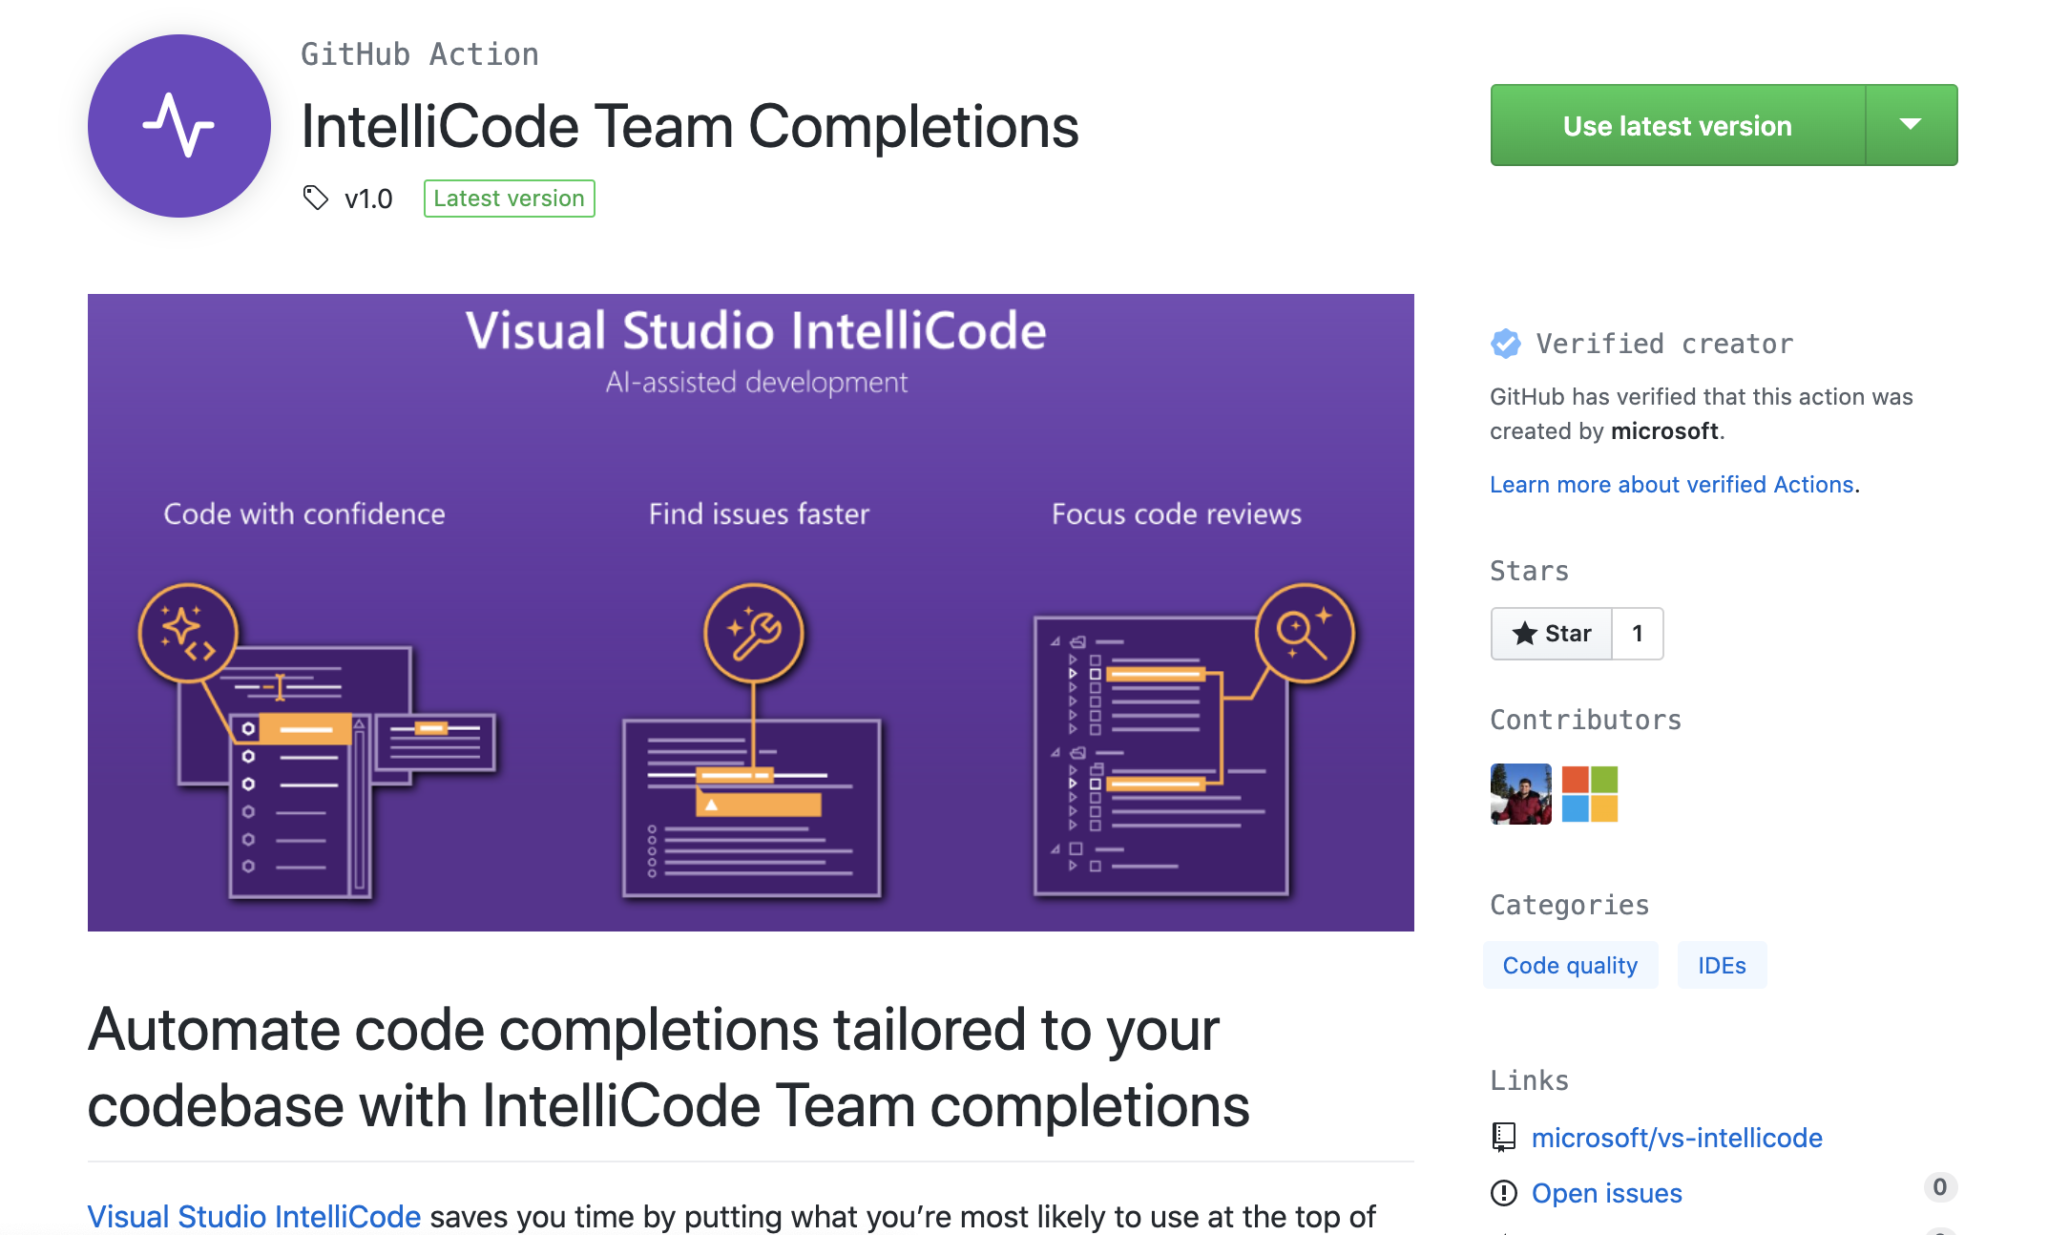 Image GitHub Action for Visual Studio IntelliCode Team Completions